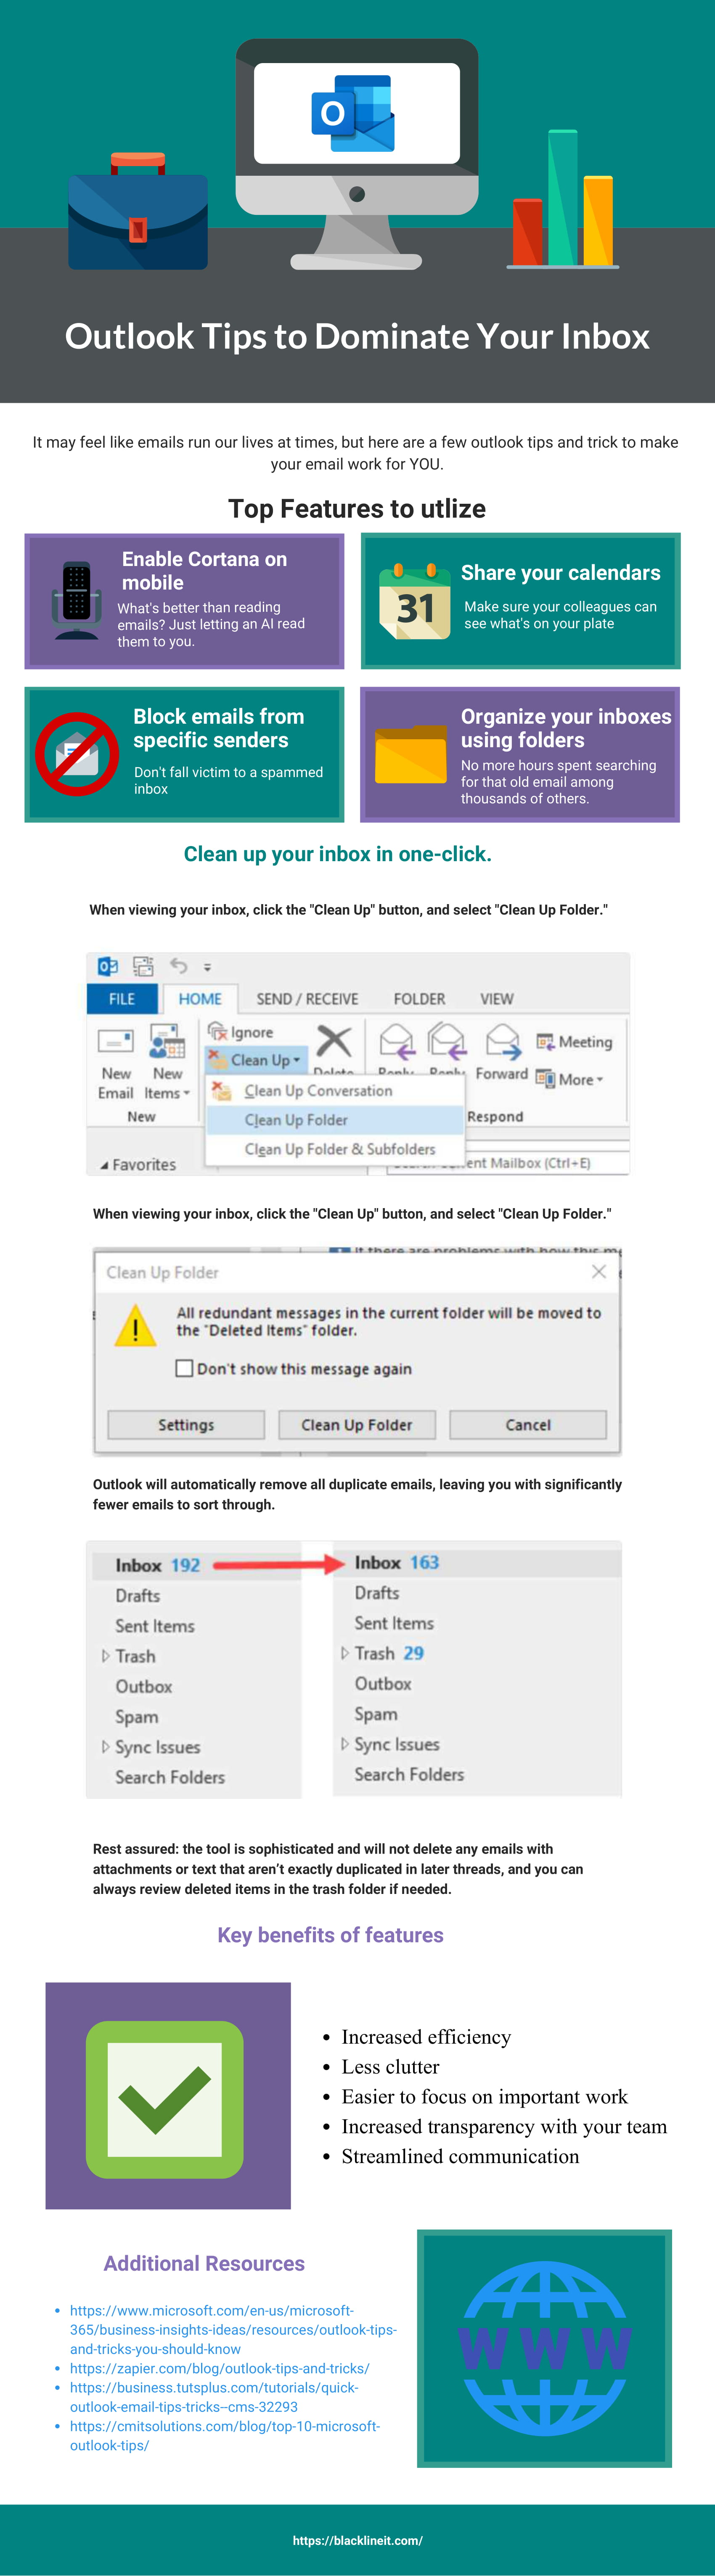 outlook-tips